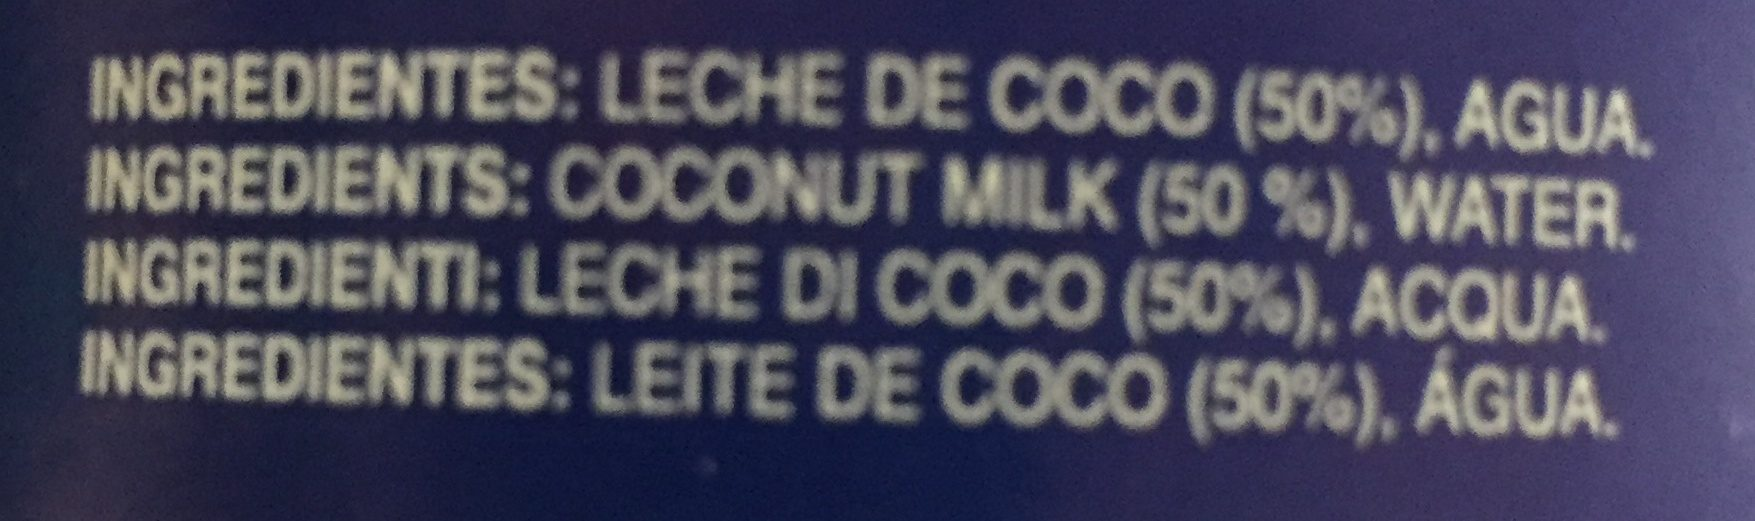 Leche de coco para cocinar - Ingredients - fr